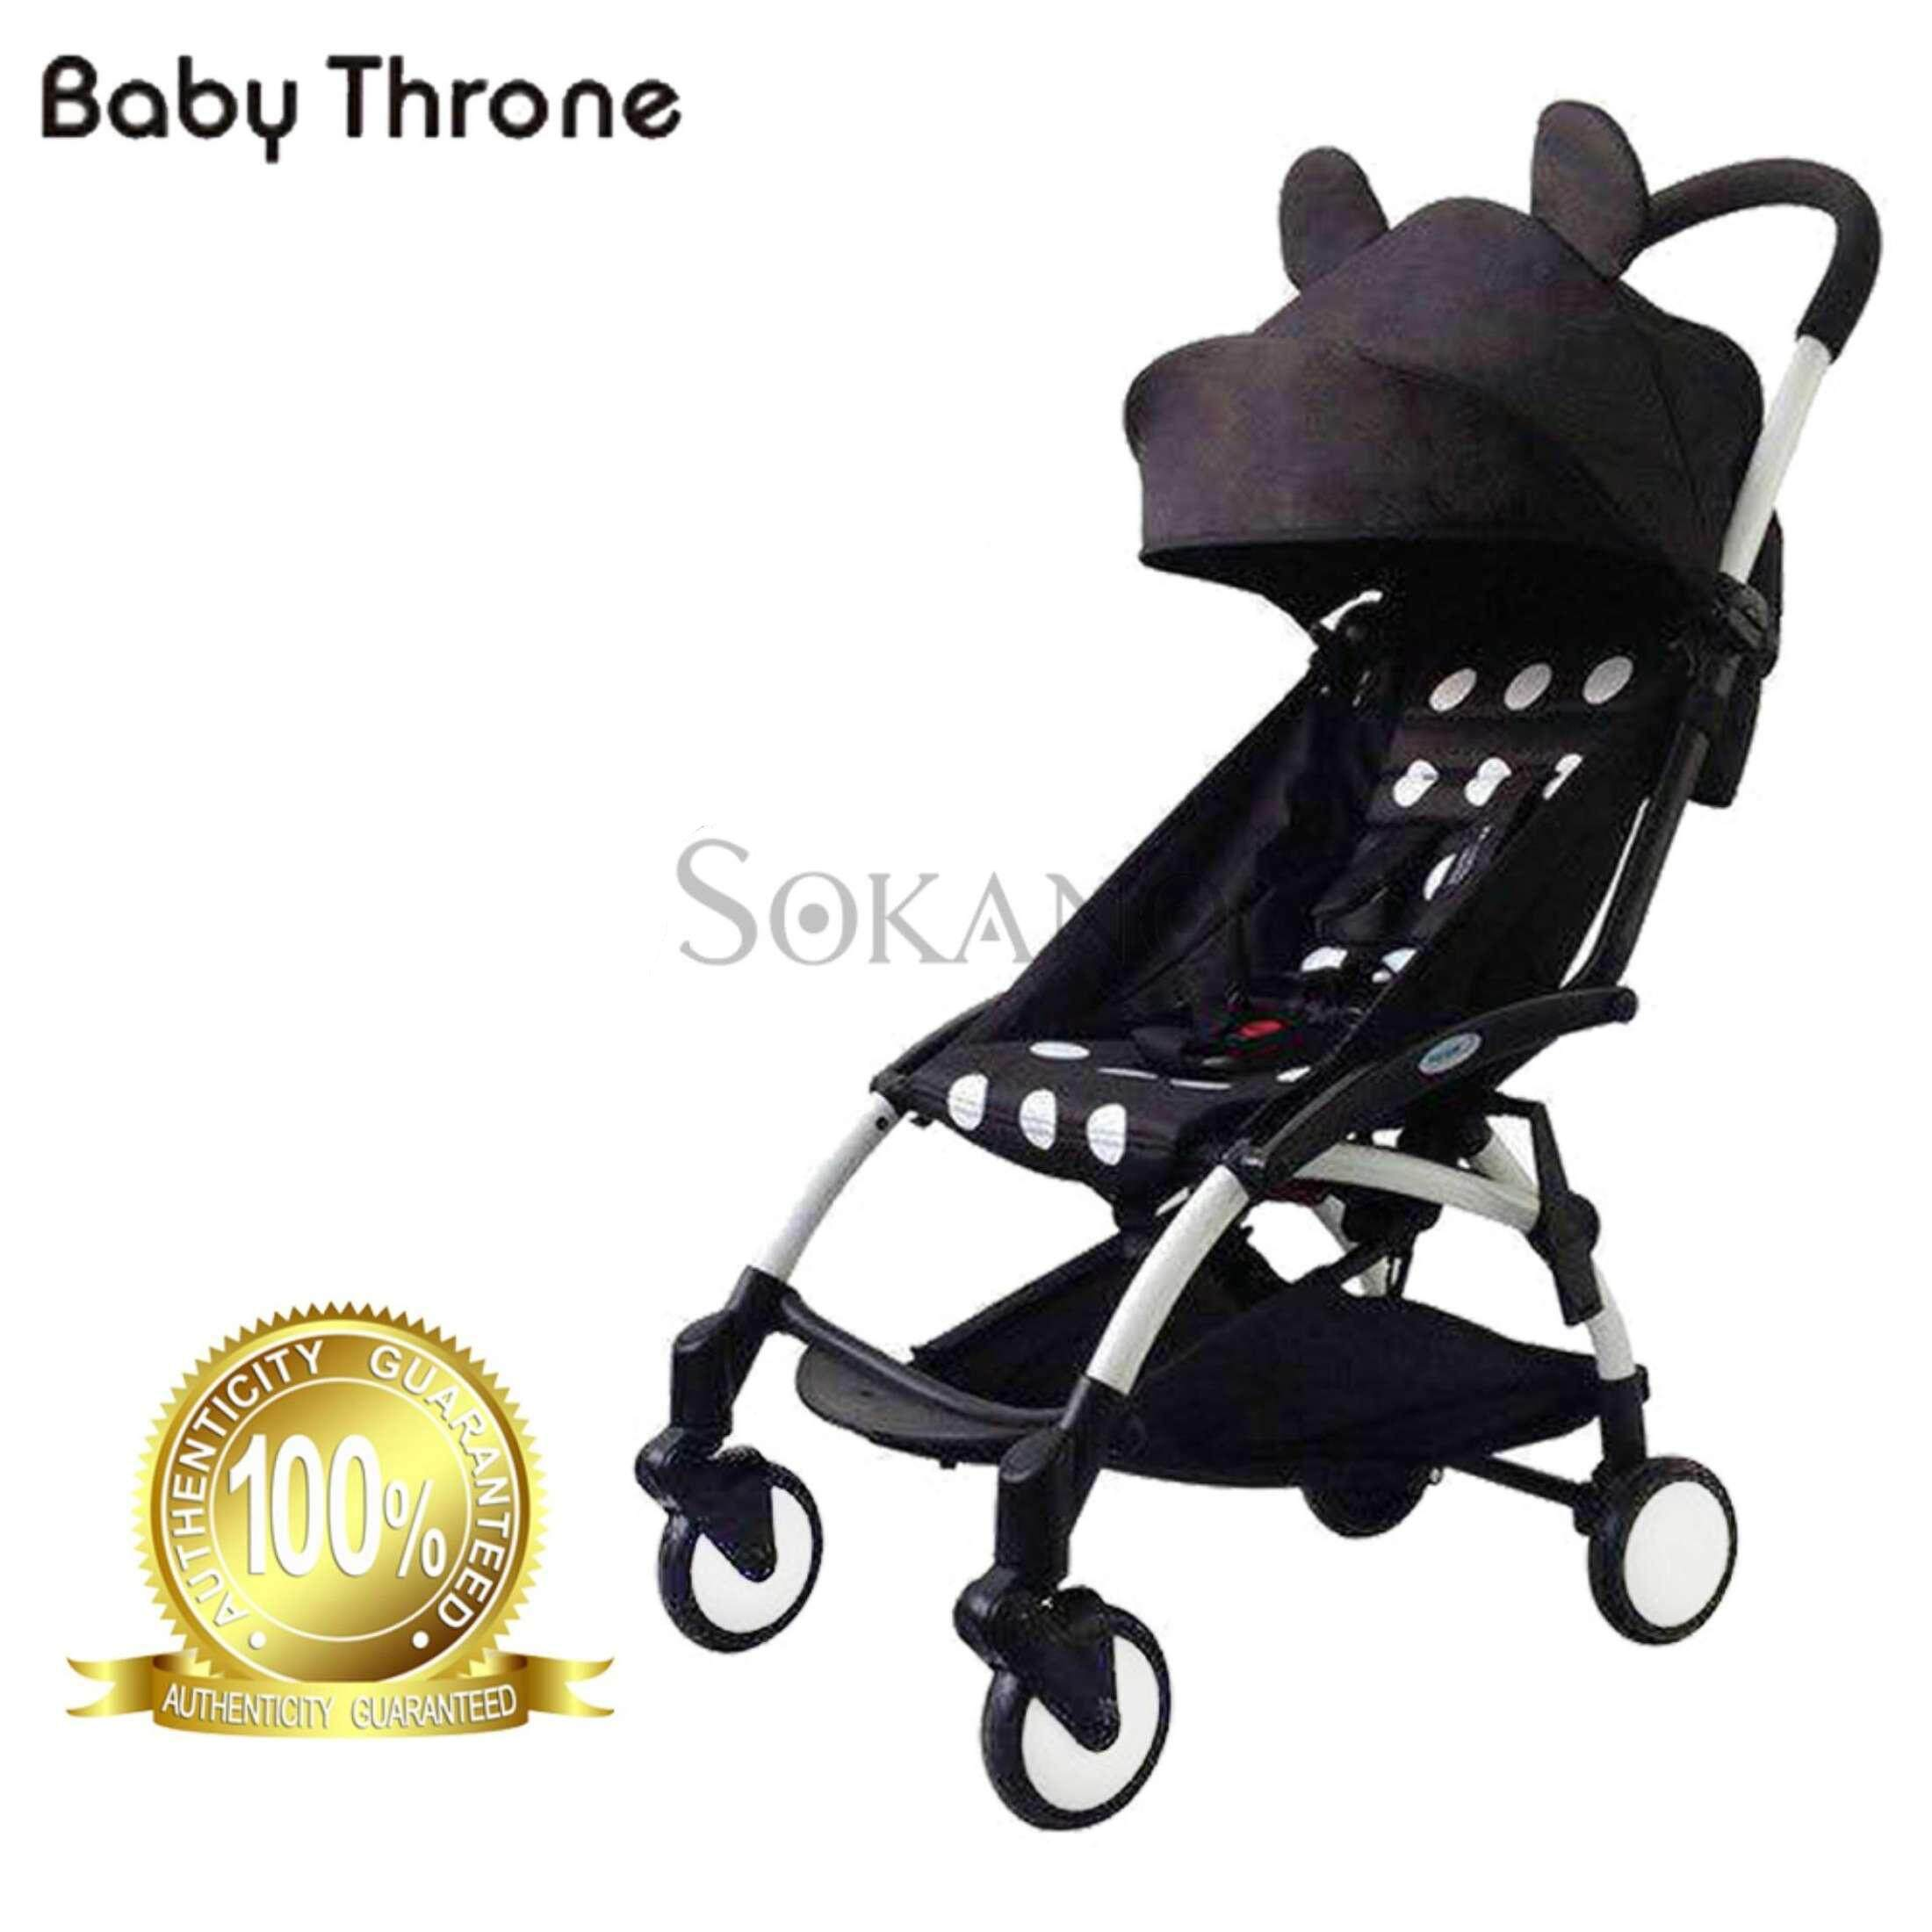 Baby Throne (100% authentic) Premium Cartoon Theme Lightweight Super Compact Foldable Stroller - Boy design